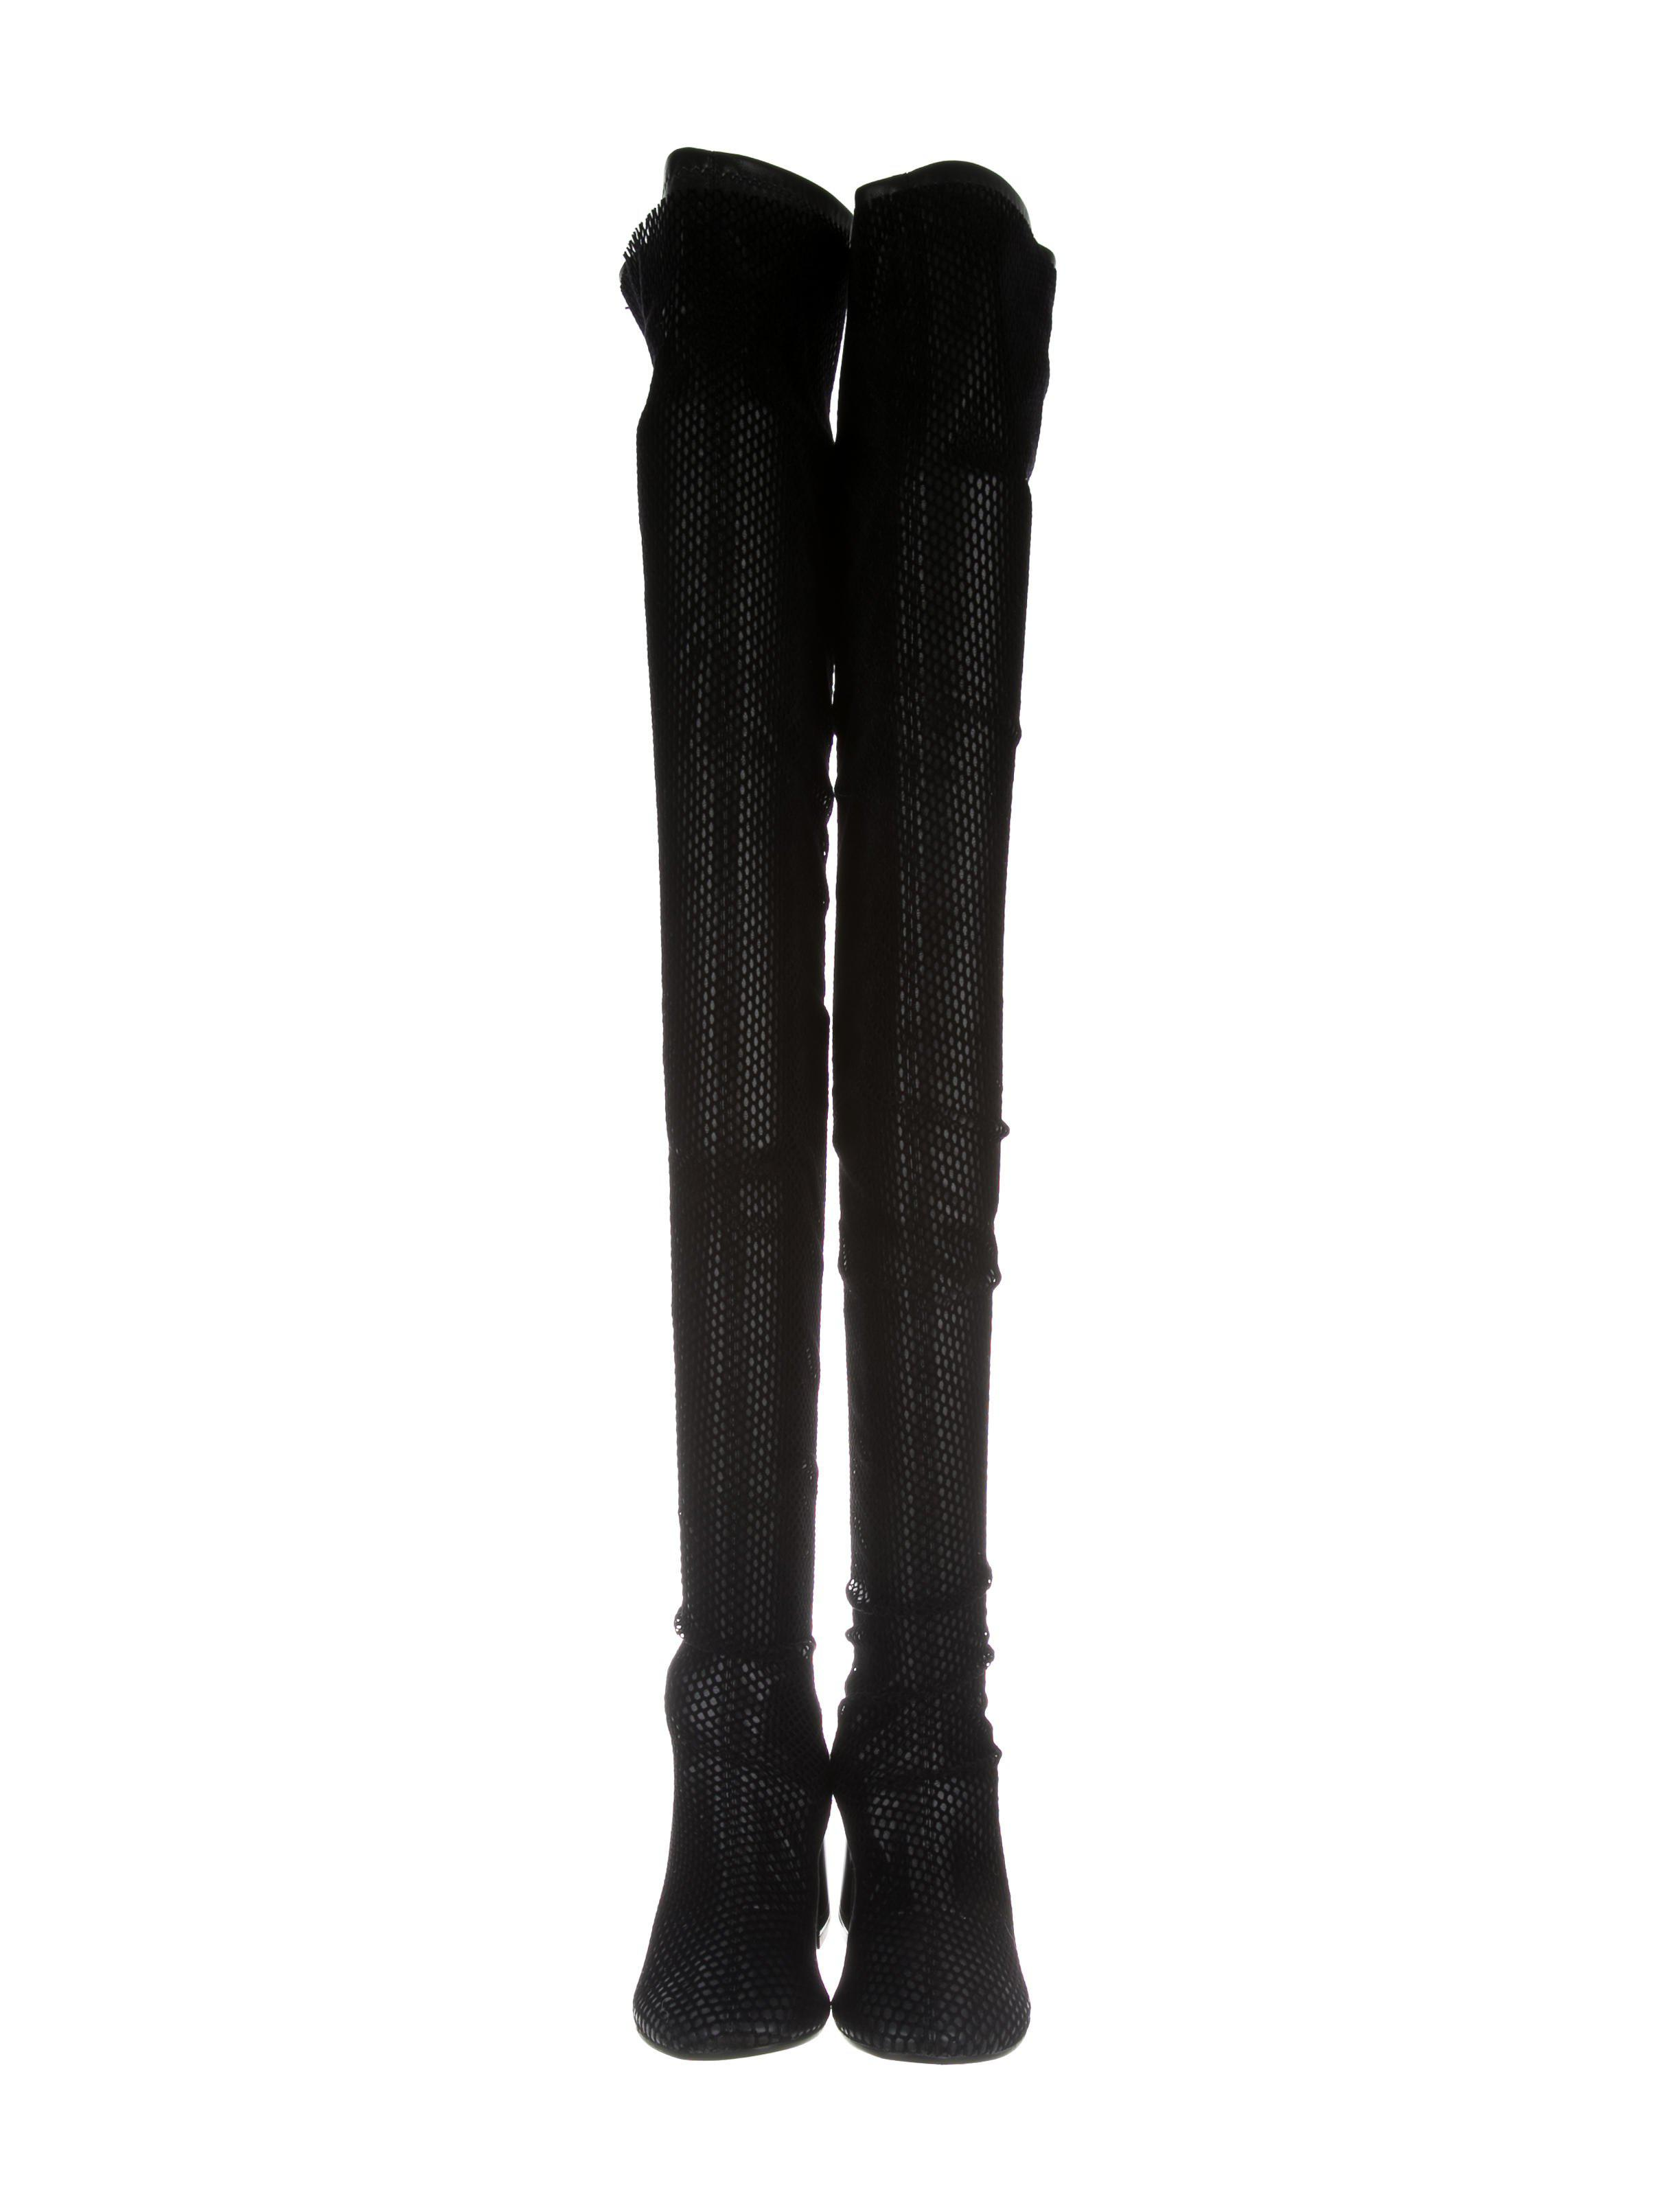 Maison Margiela Suede Laser Cut Thigh-High Boots w/ Tags